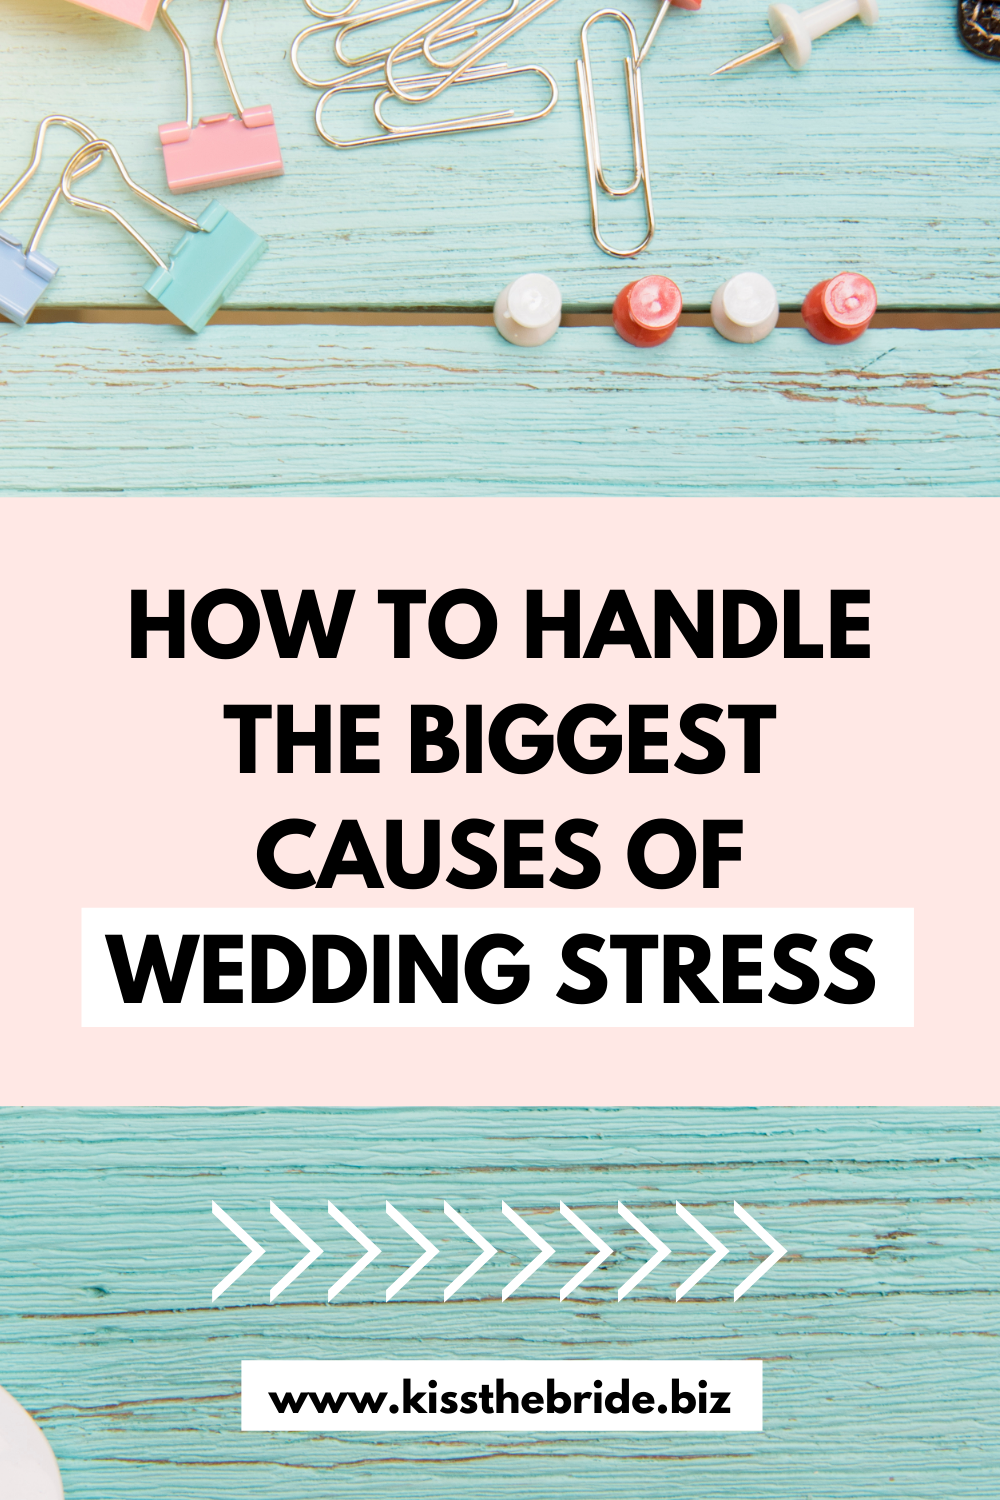 Wedding planning stress